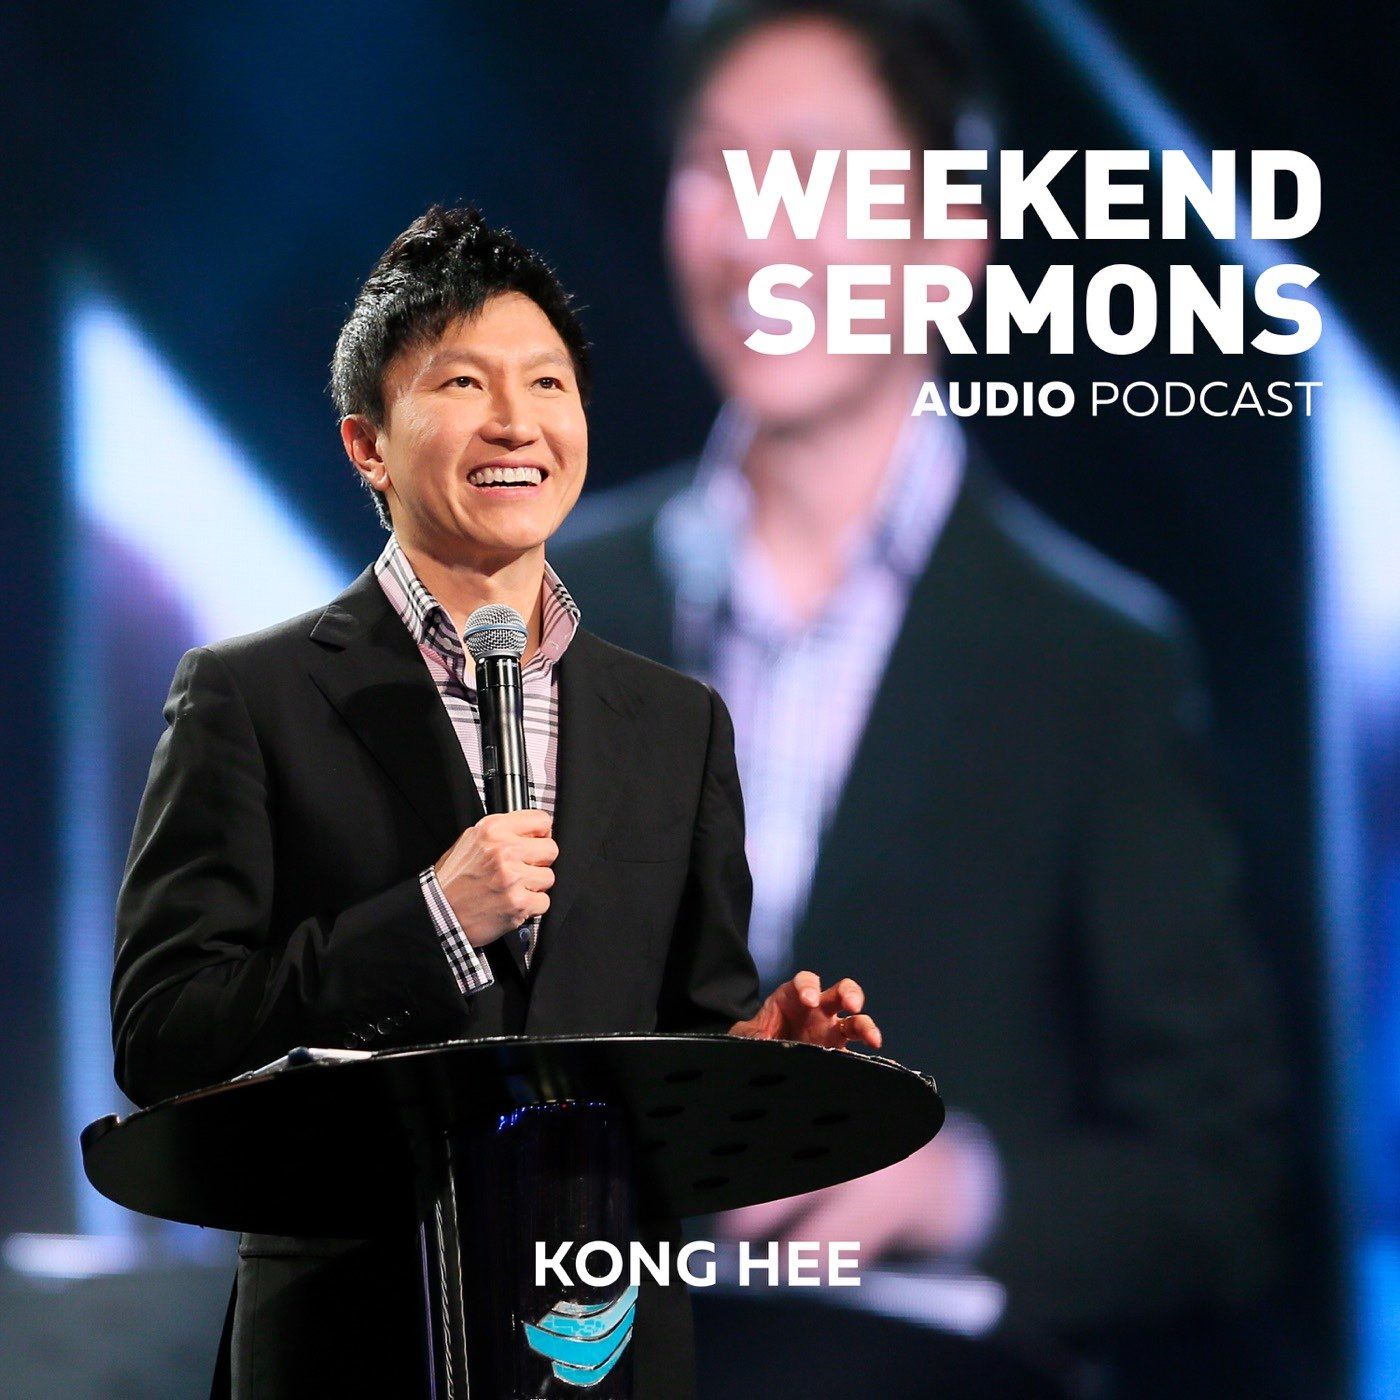 Kong Hee: The Power of Confessions (Part 3)